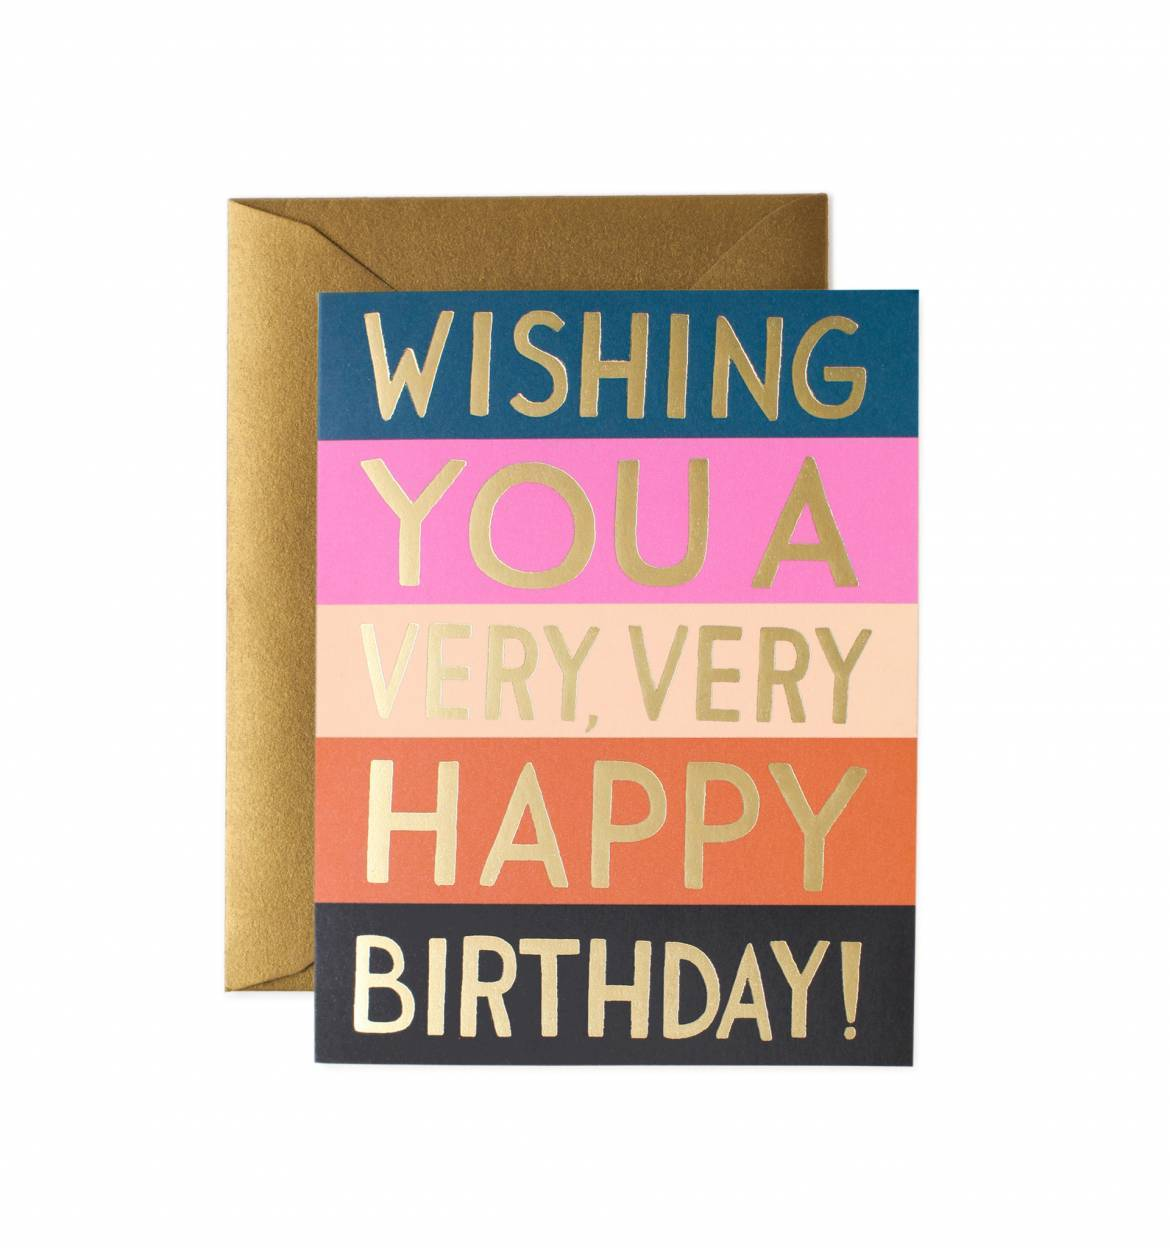 Wish your friends a very happy birthday with this fun Color Block Birthday Card from Rifle Paper Co.